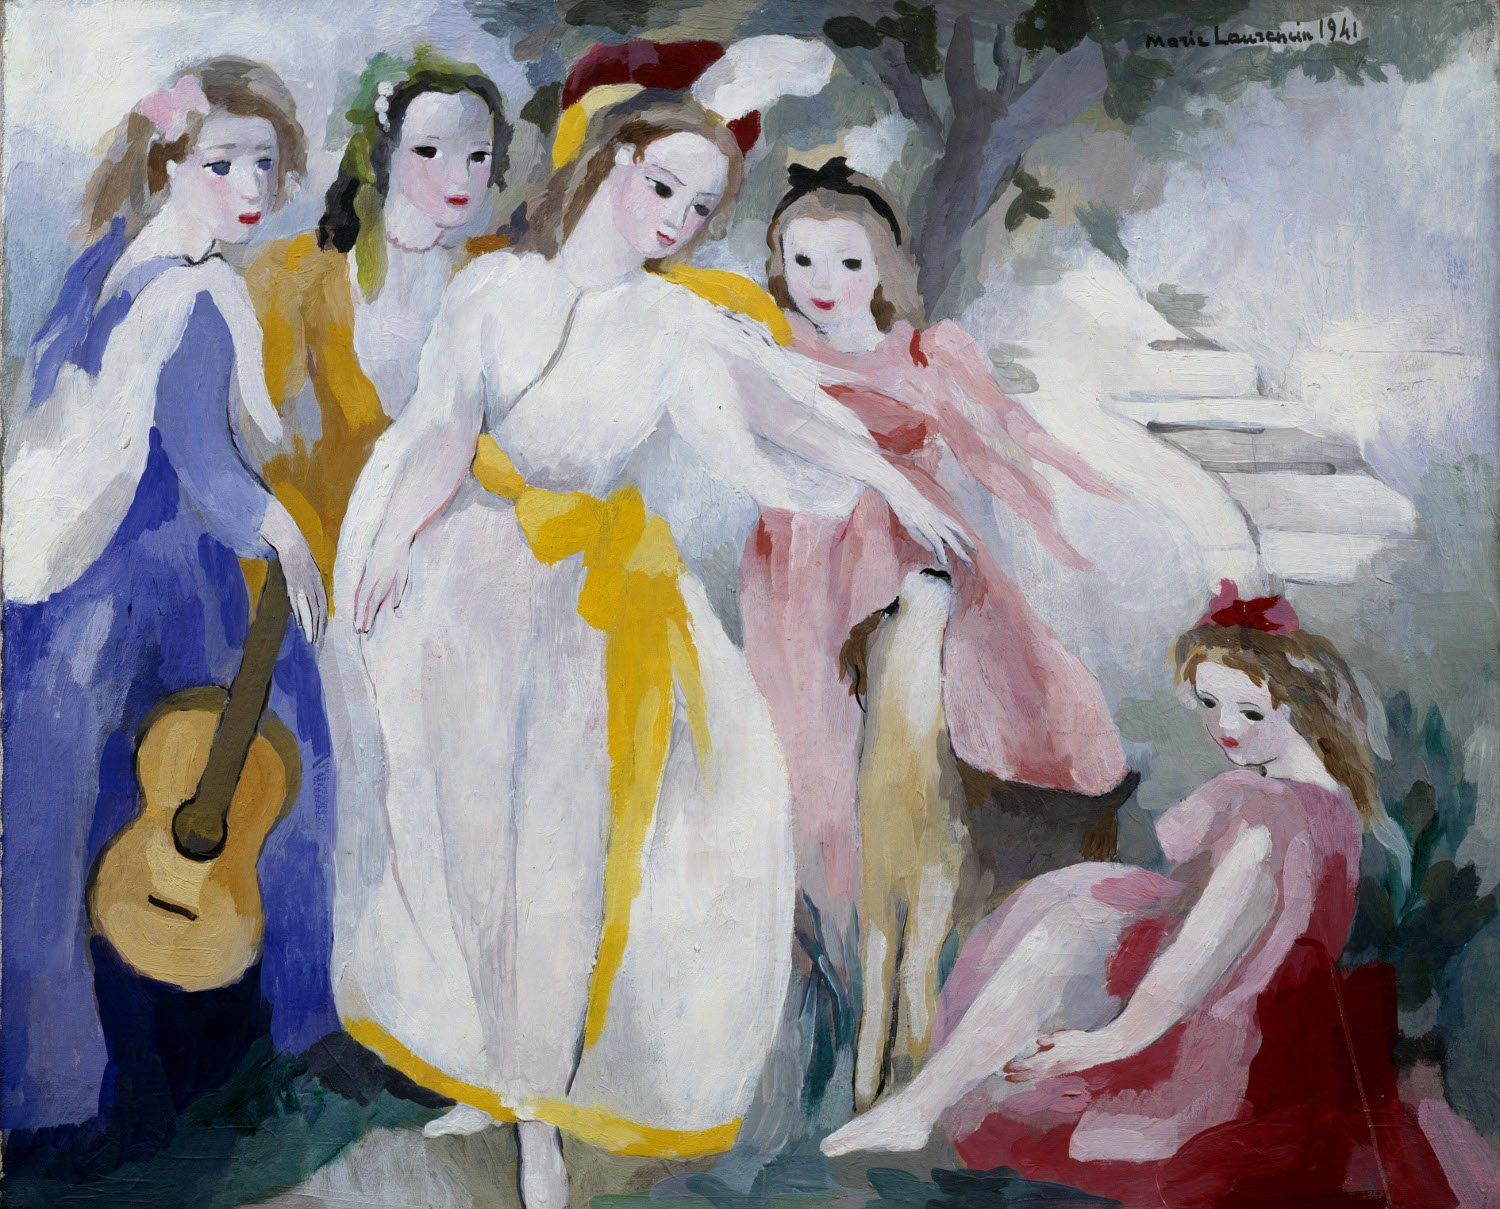 https://awarewomenartists.com/wp-content/uploads/2017/05/marie-laurencin_la-princesse-de-cleves_aware_women-artists_artistes-femmes-1500x1209.jpg